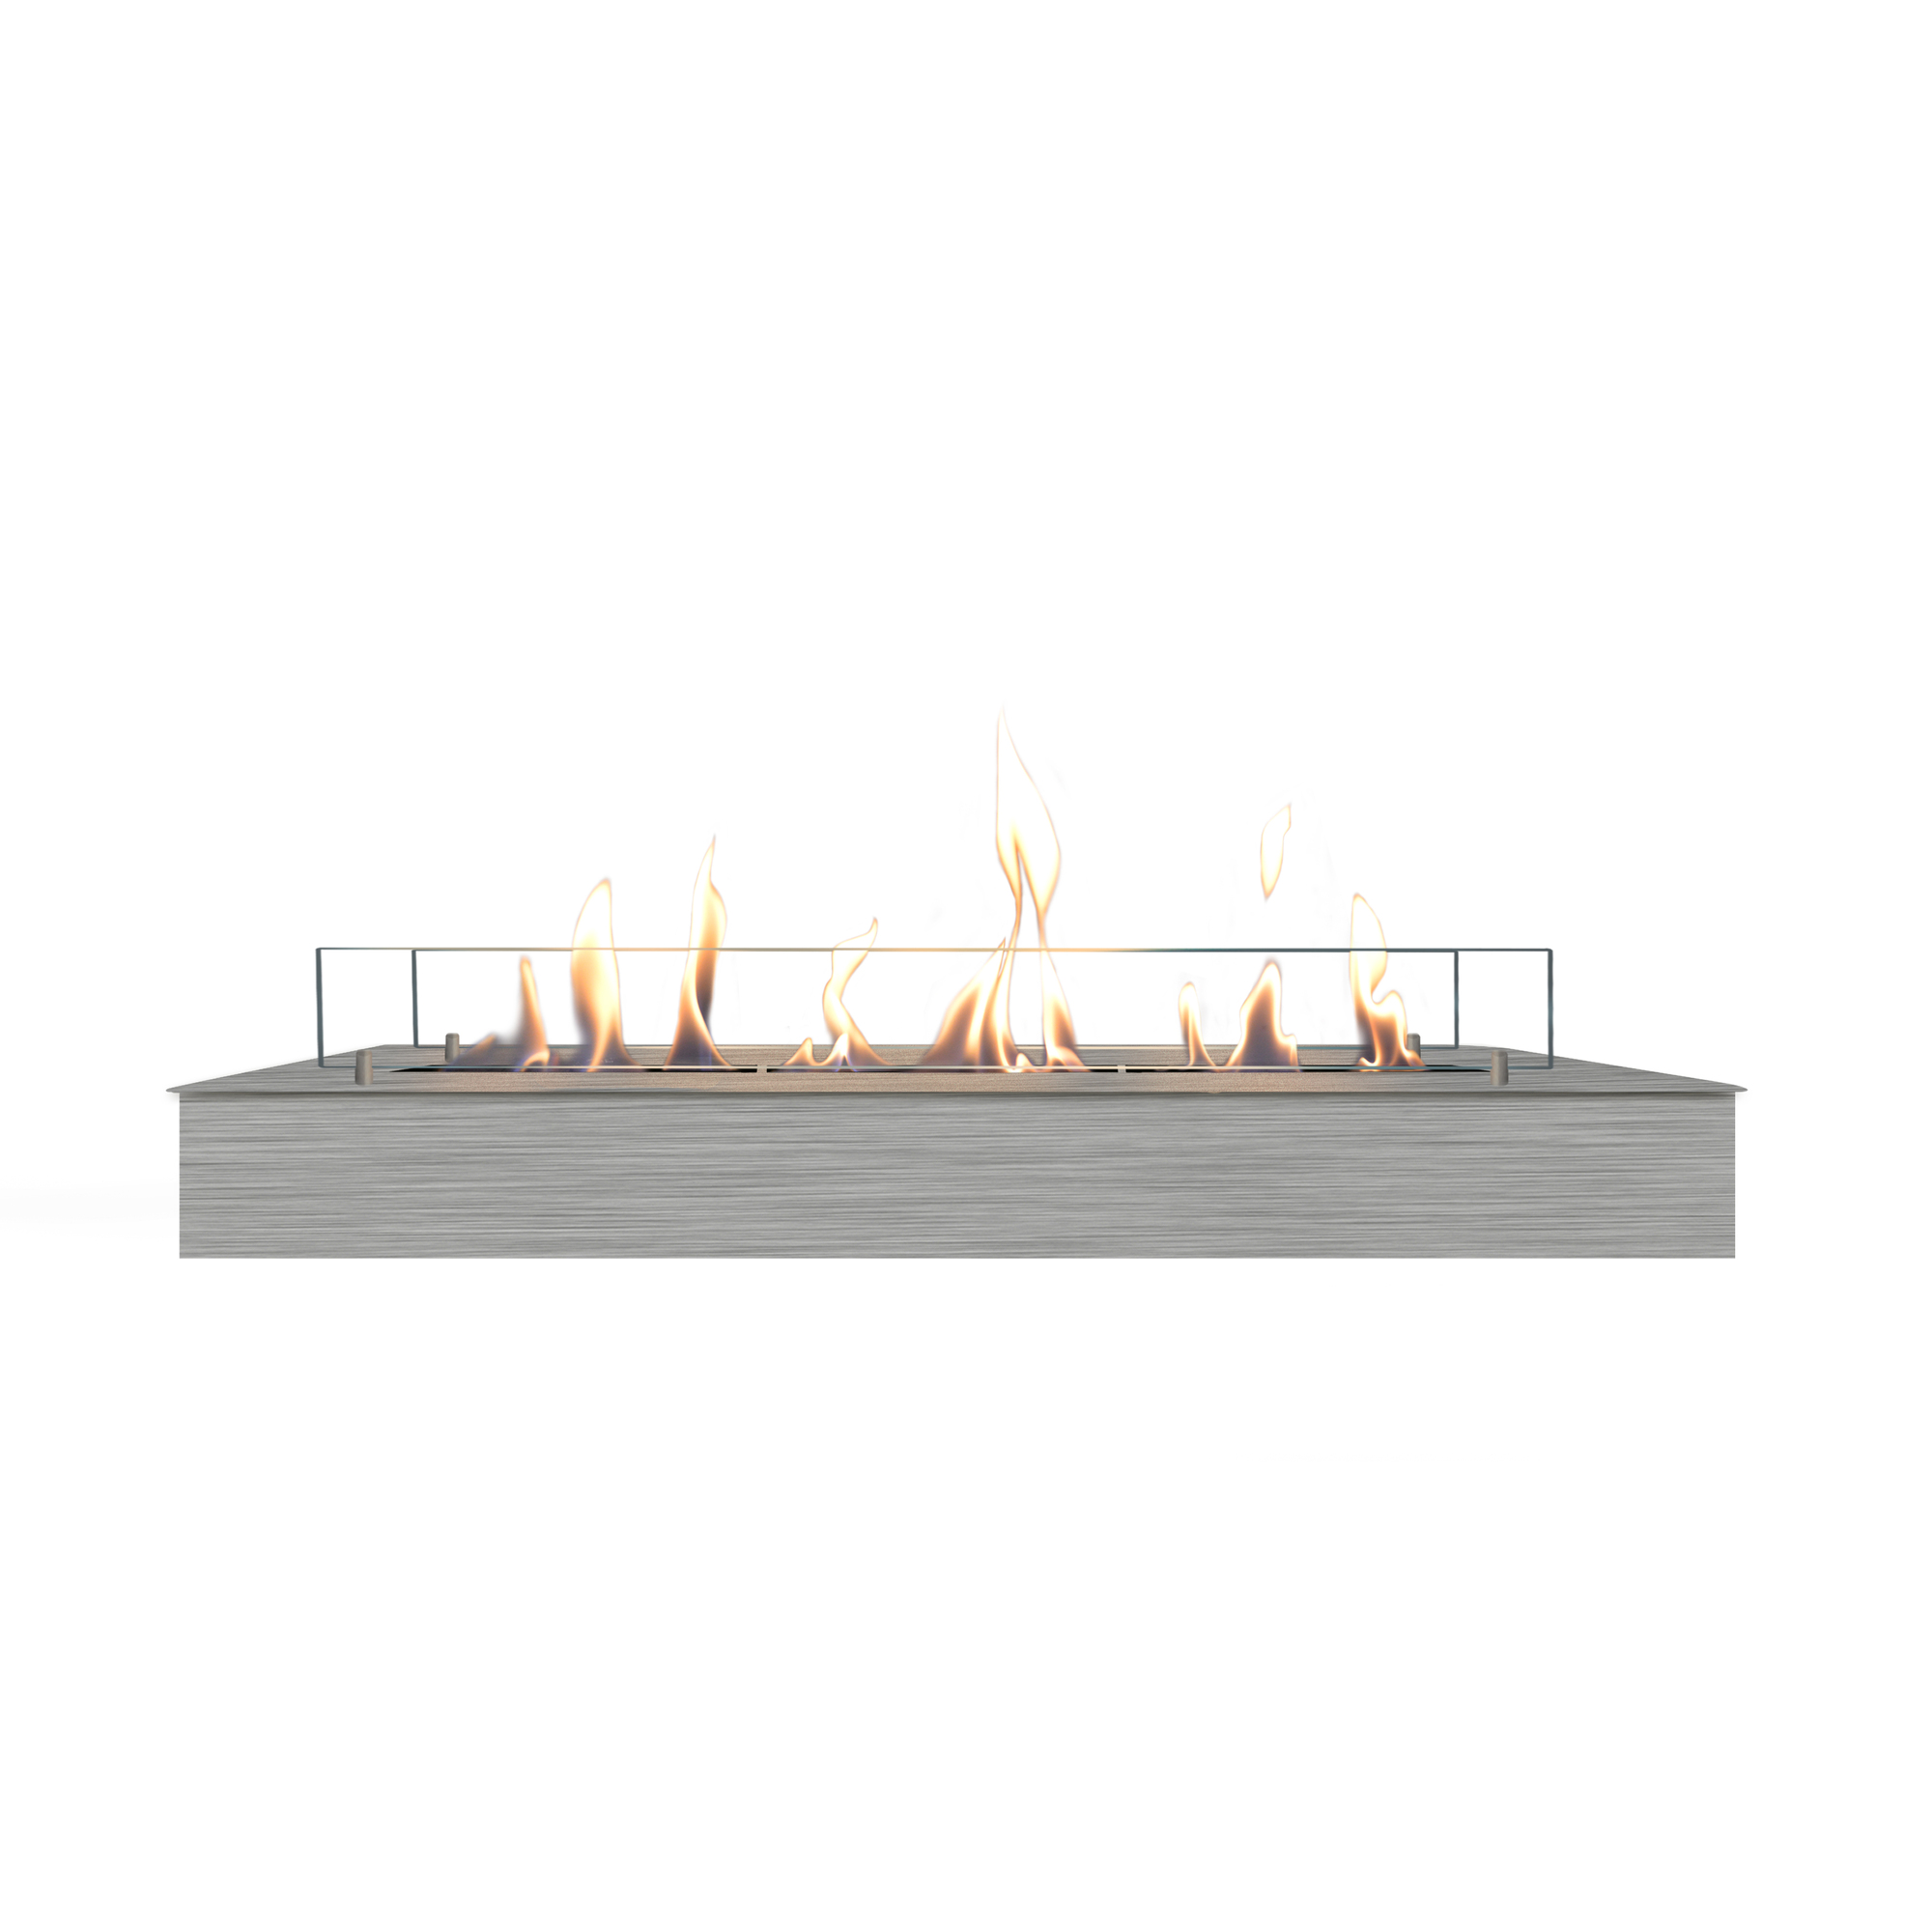 RUBY HOLLAND Bioethanol Burner 8014 LS Line Burner Inox + Glass